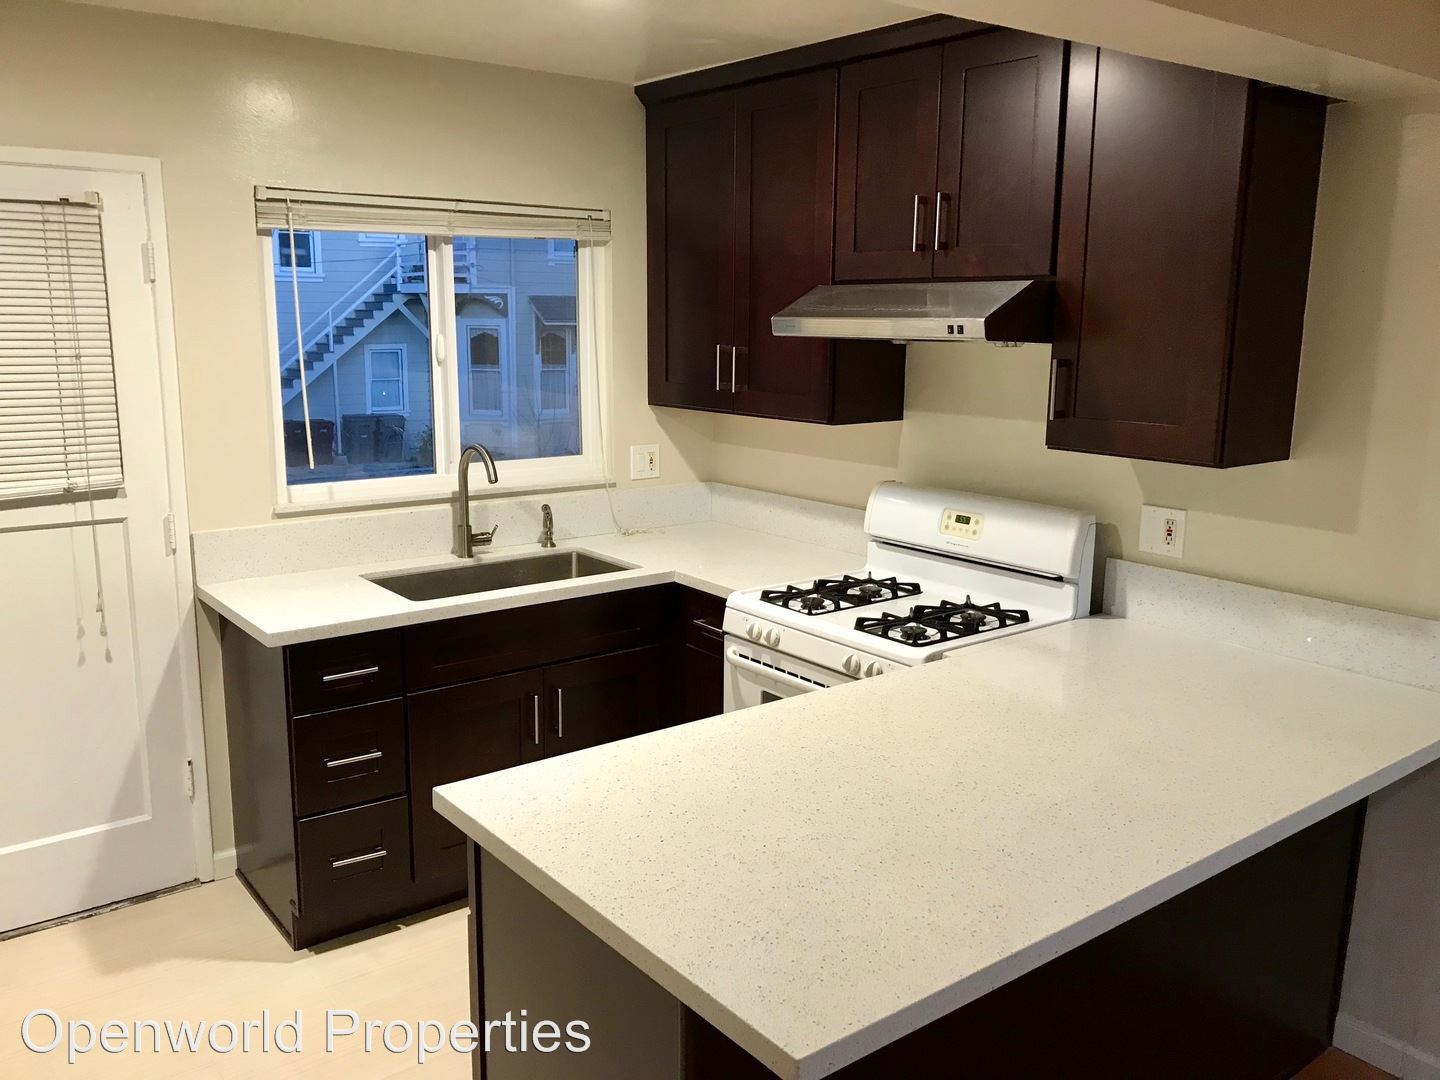 A Look Inside Oakland 39 S Least Expensive Apartments Hoodline